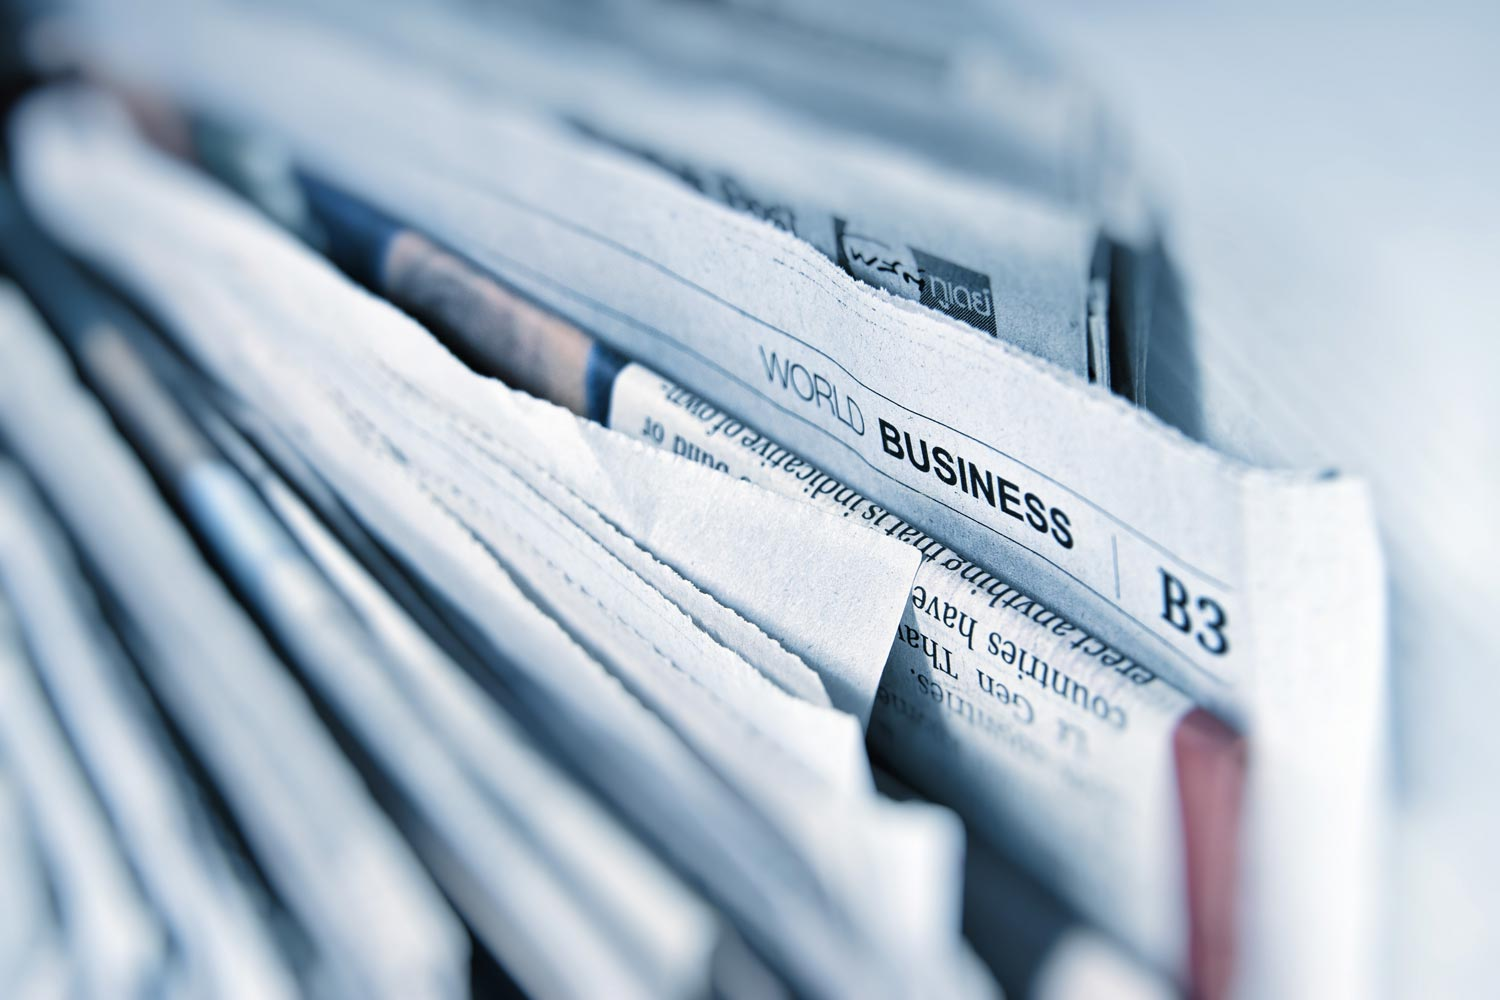 Closeup photo of a bunch of newspapers.